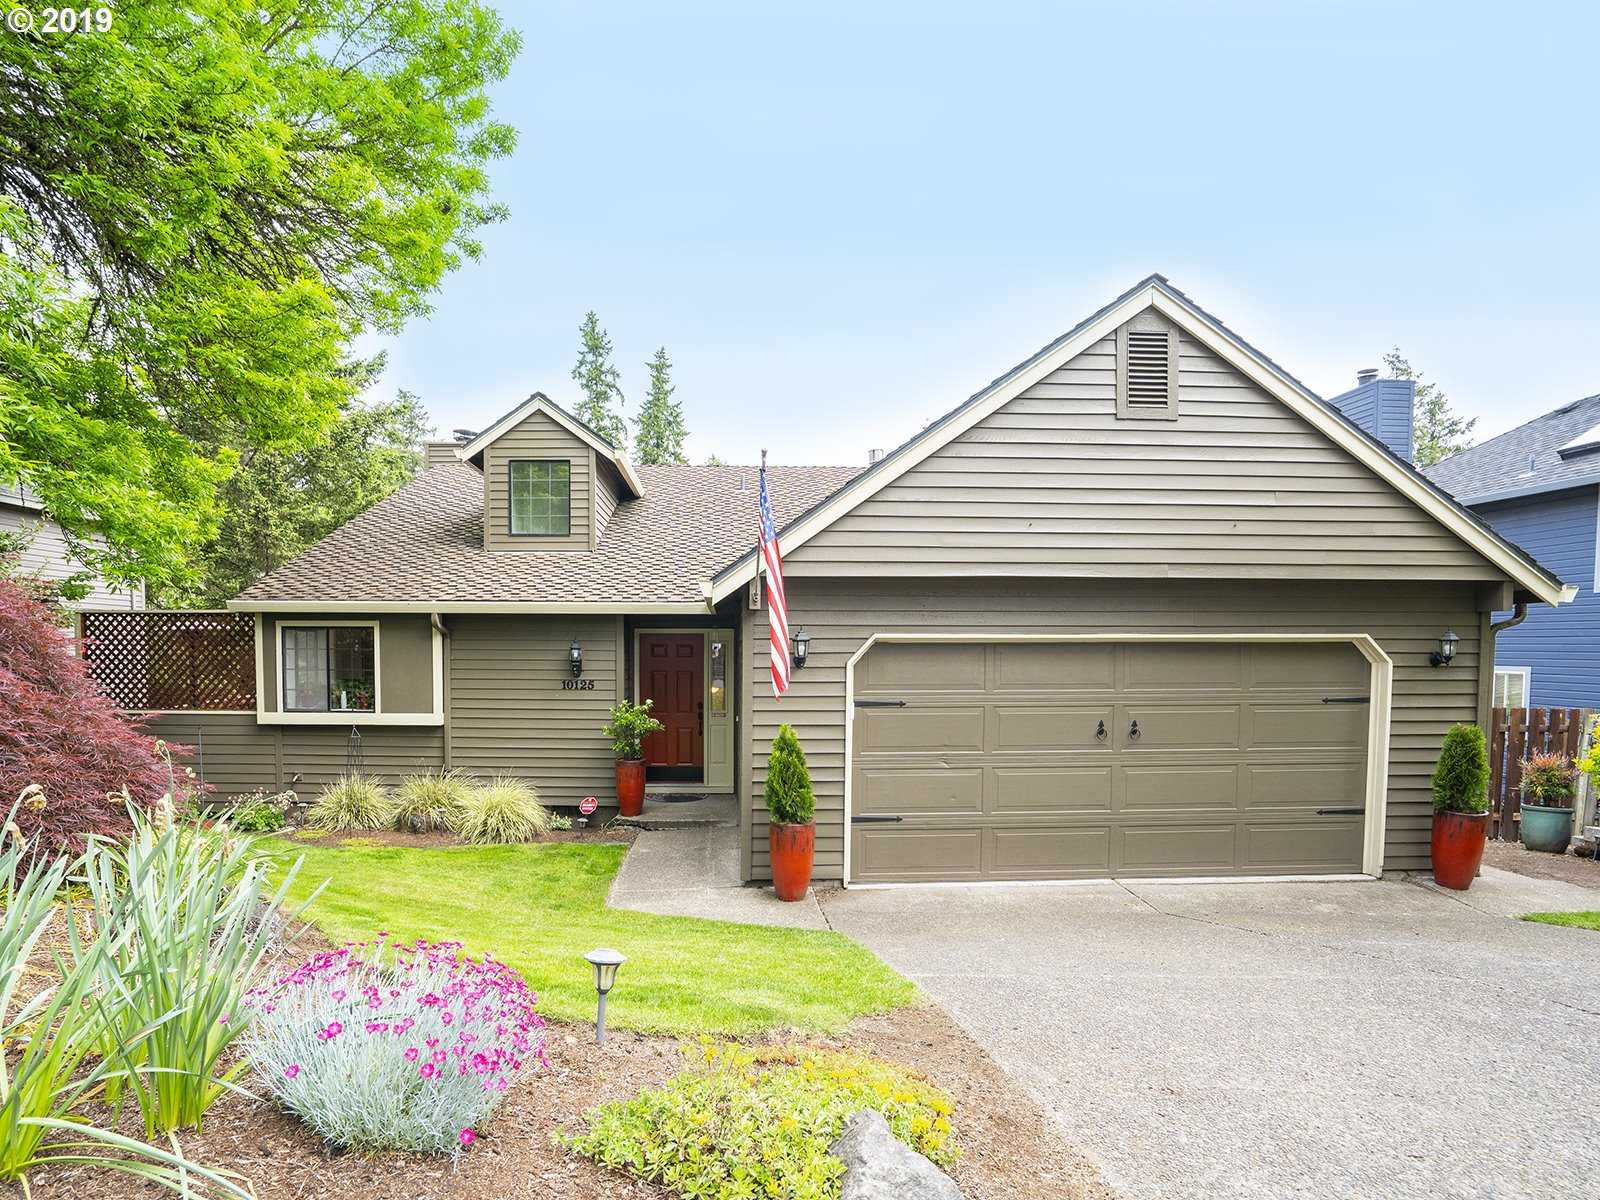 $447,500 - 4Br/2Ba -  for Sale in Murray Hill Area, Beaverton